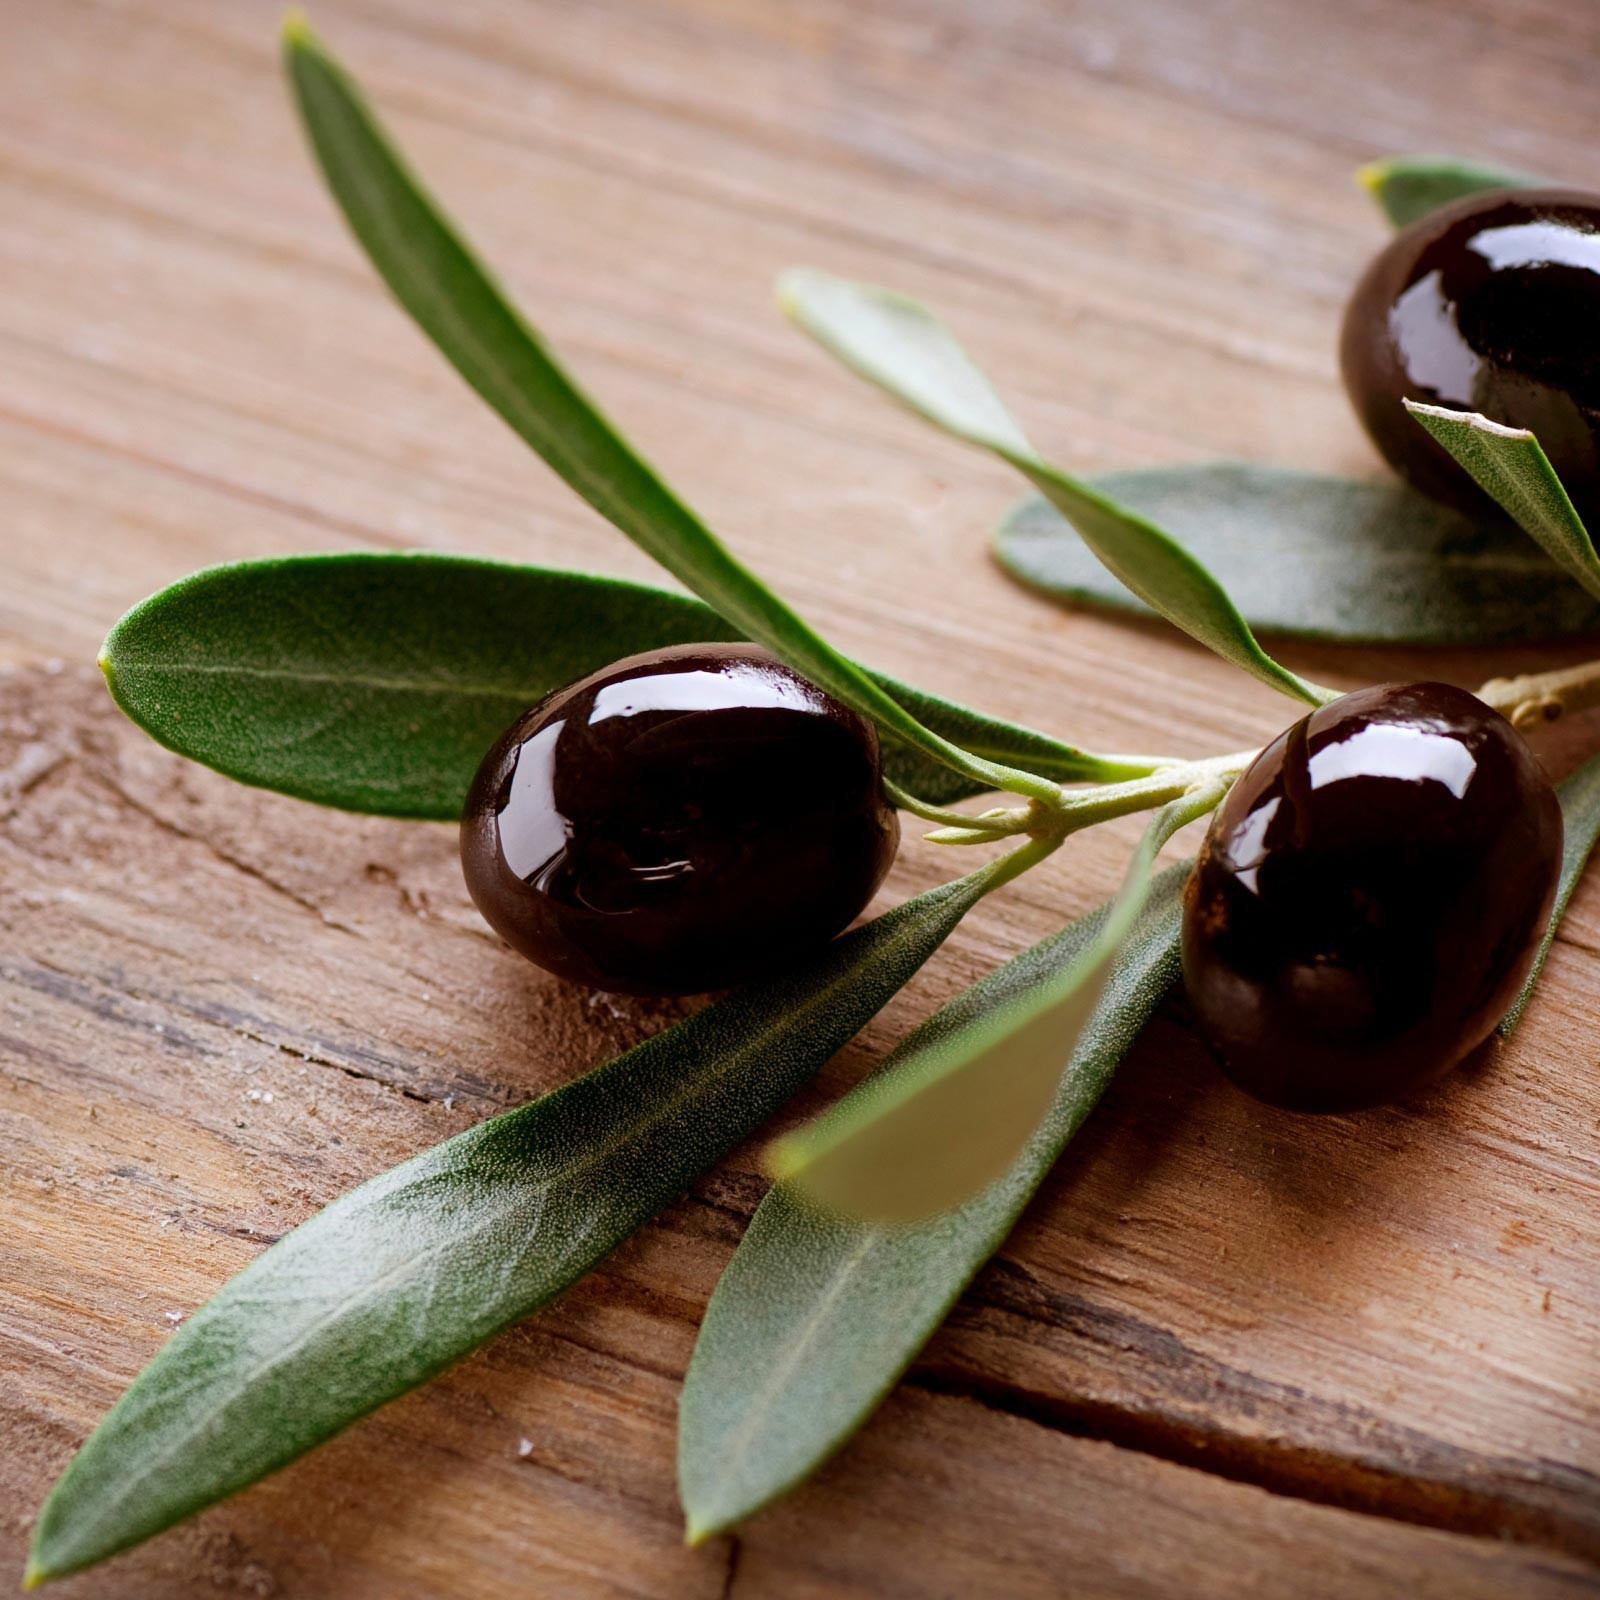 olives-nature-plant